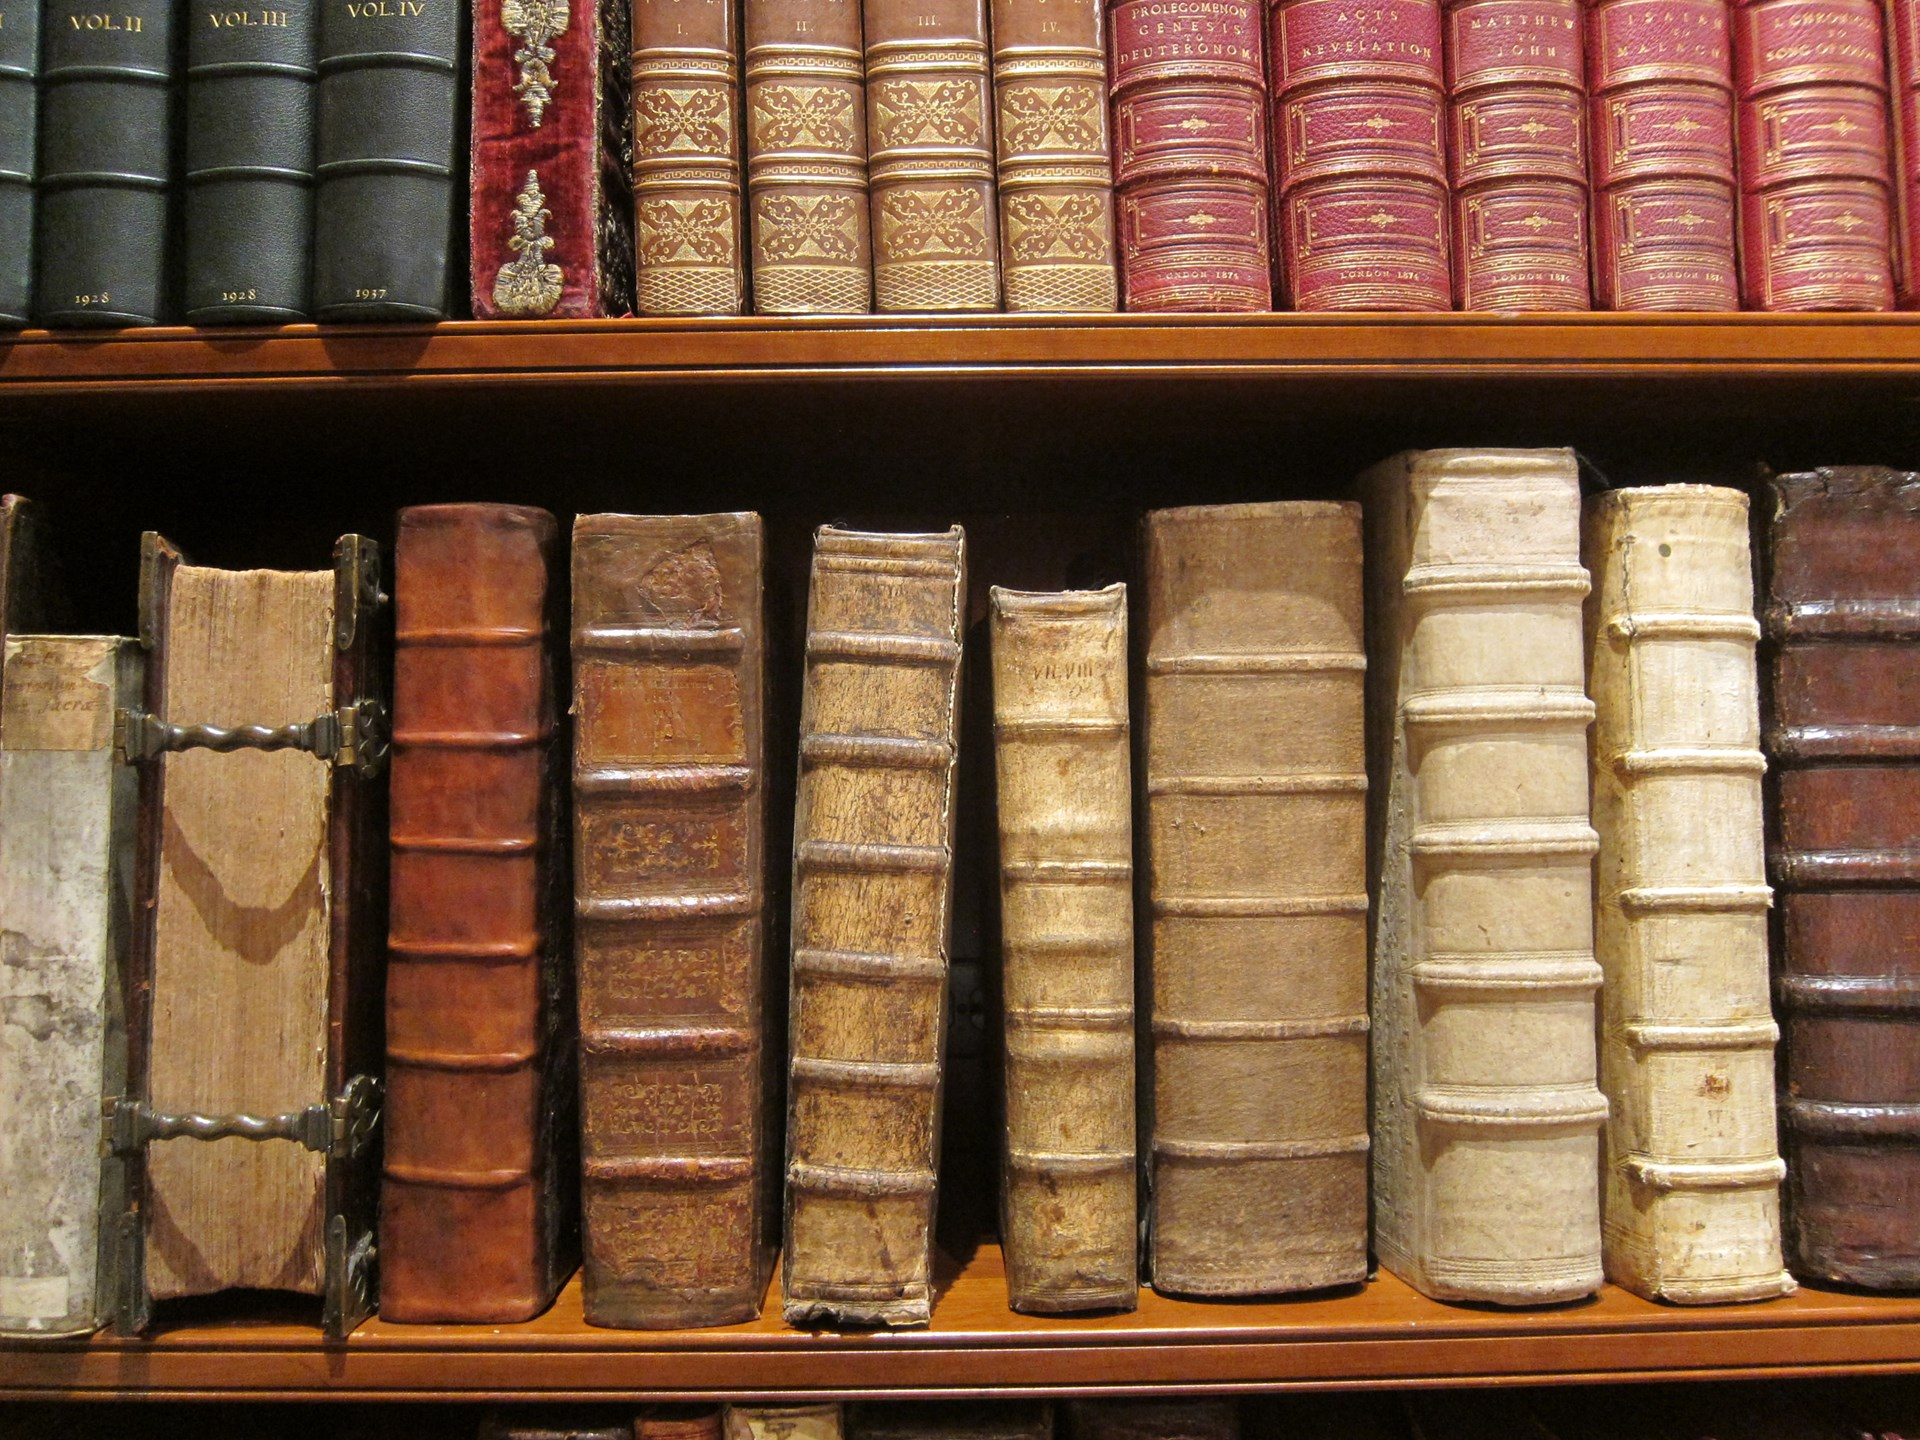 A Book Is a Tool, Not a Trophy - Foundation for Economic